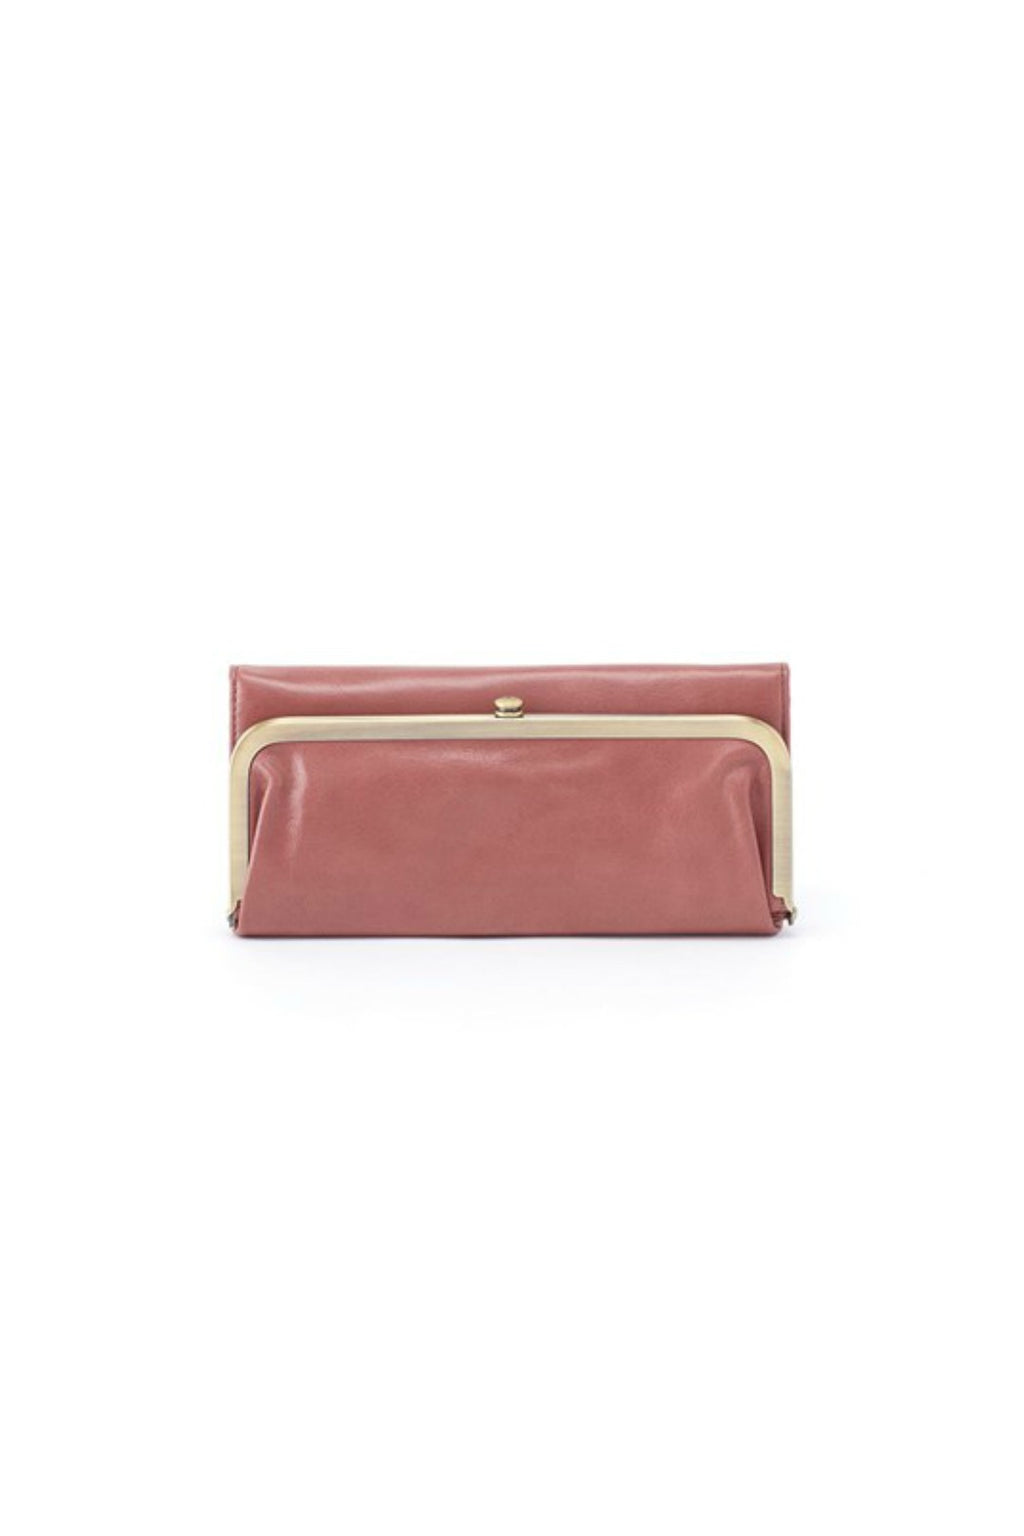 Hobo Rachel Wallet - Burnished Rose 30% OFF with code: HOBOSALE